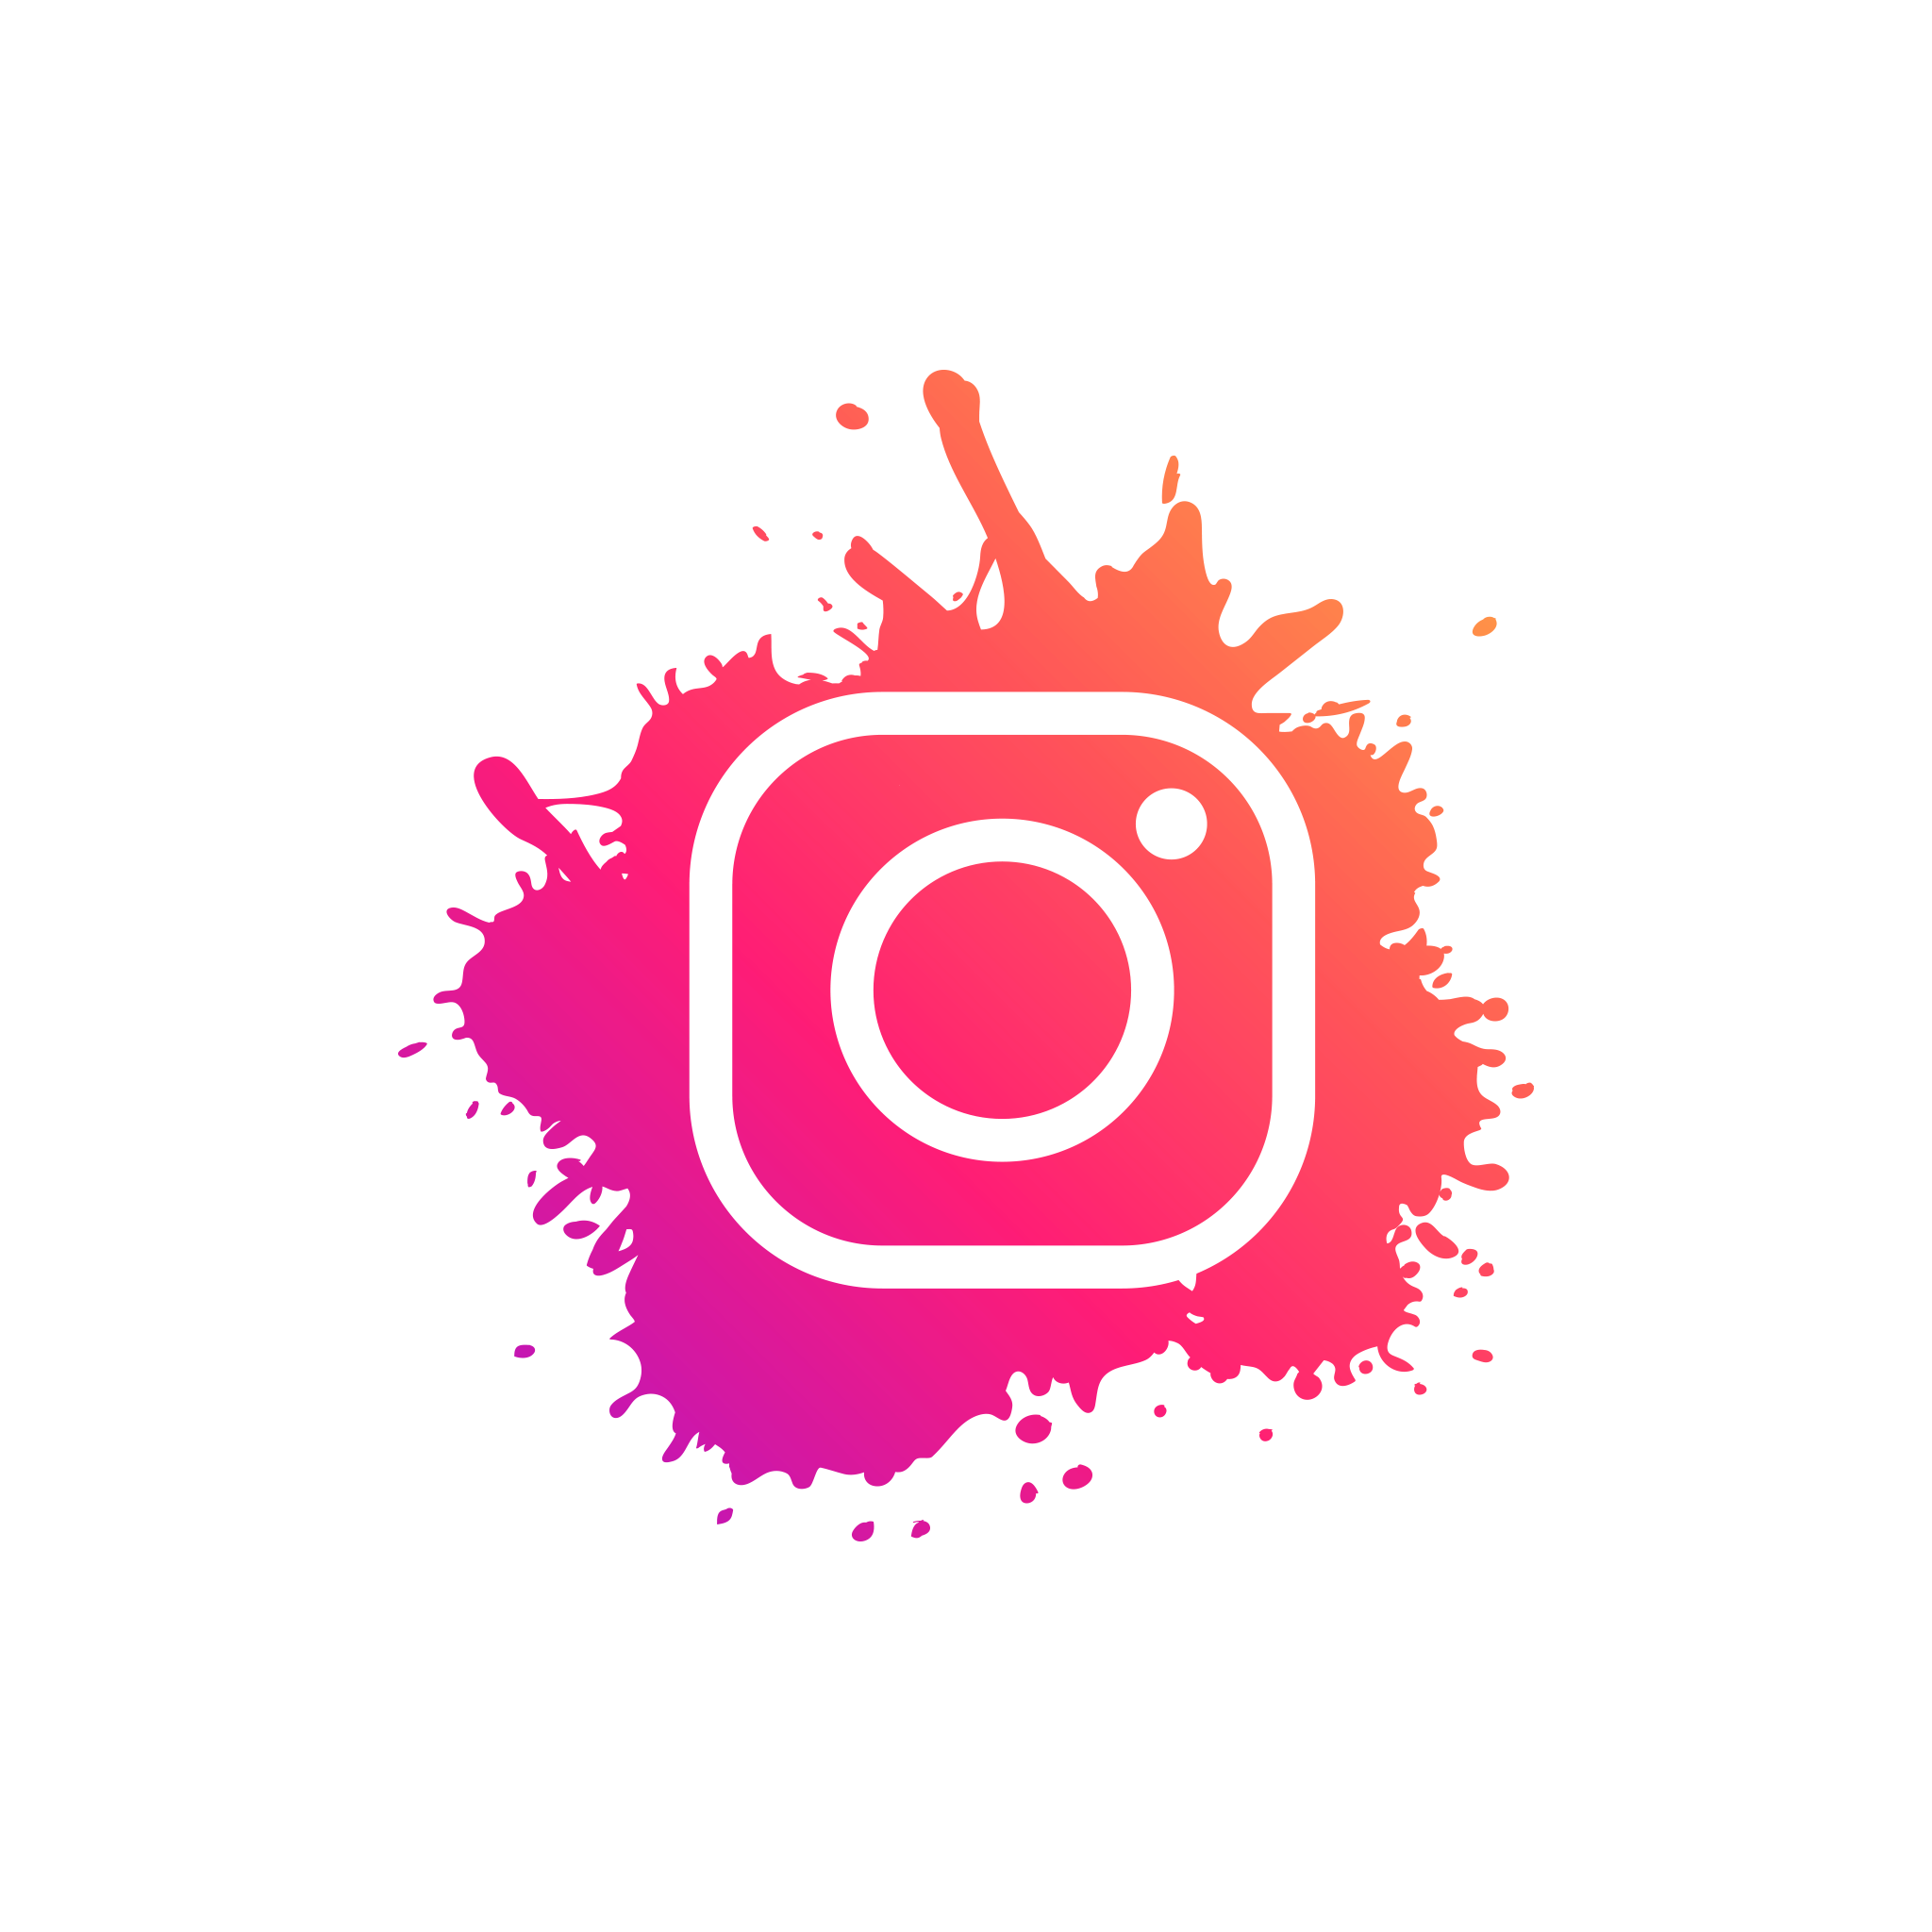 Splash Instagram Icon PNG Image Free Download in 2020